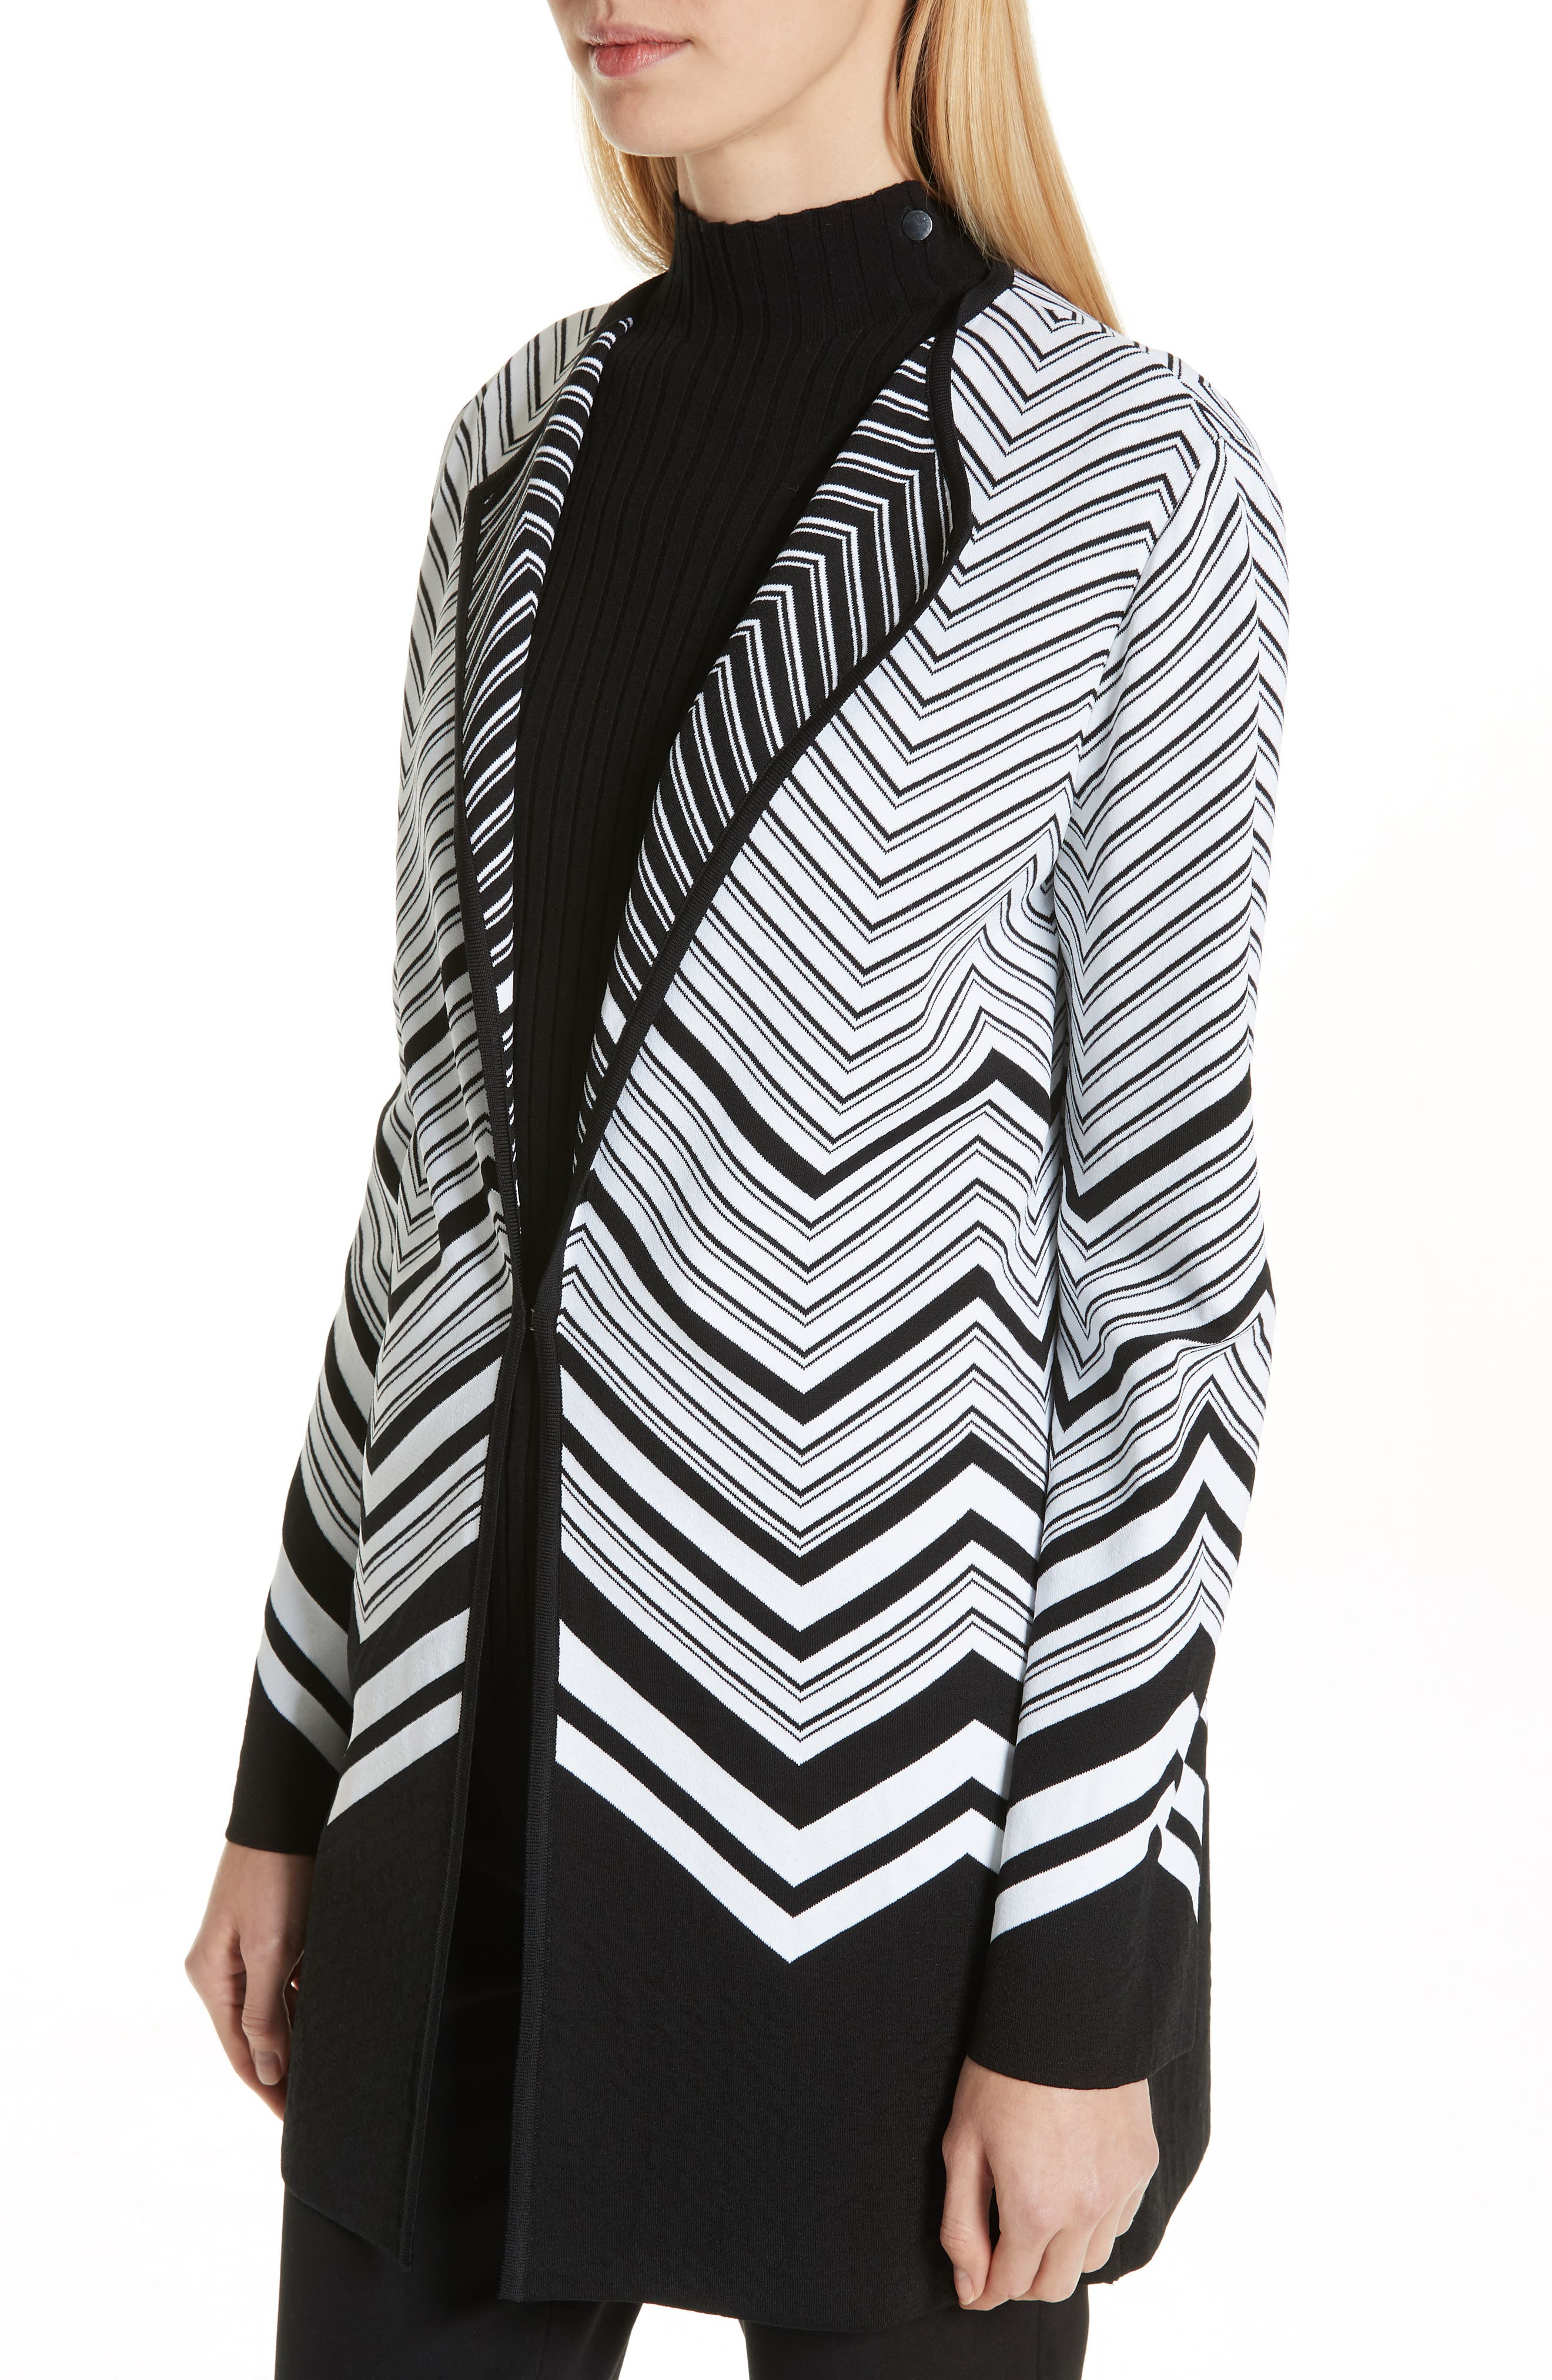 Chevron Jacquard Sweater Jacket,                             Alternate thumbnail 4, color,                             CAVIAR/ WHITE